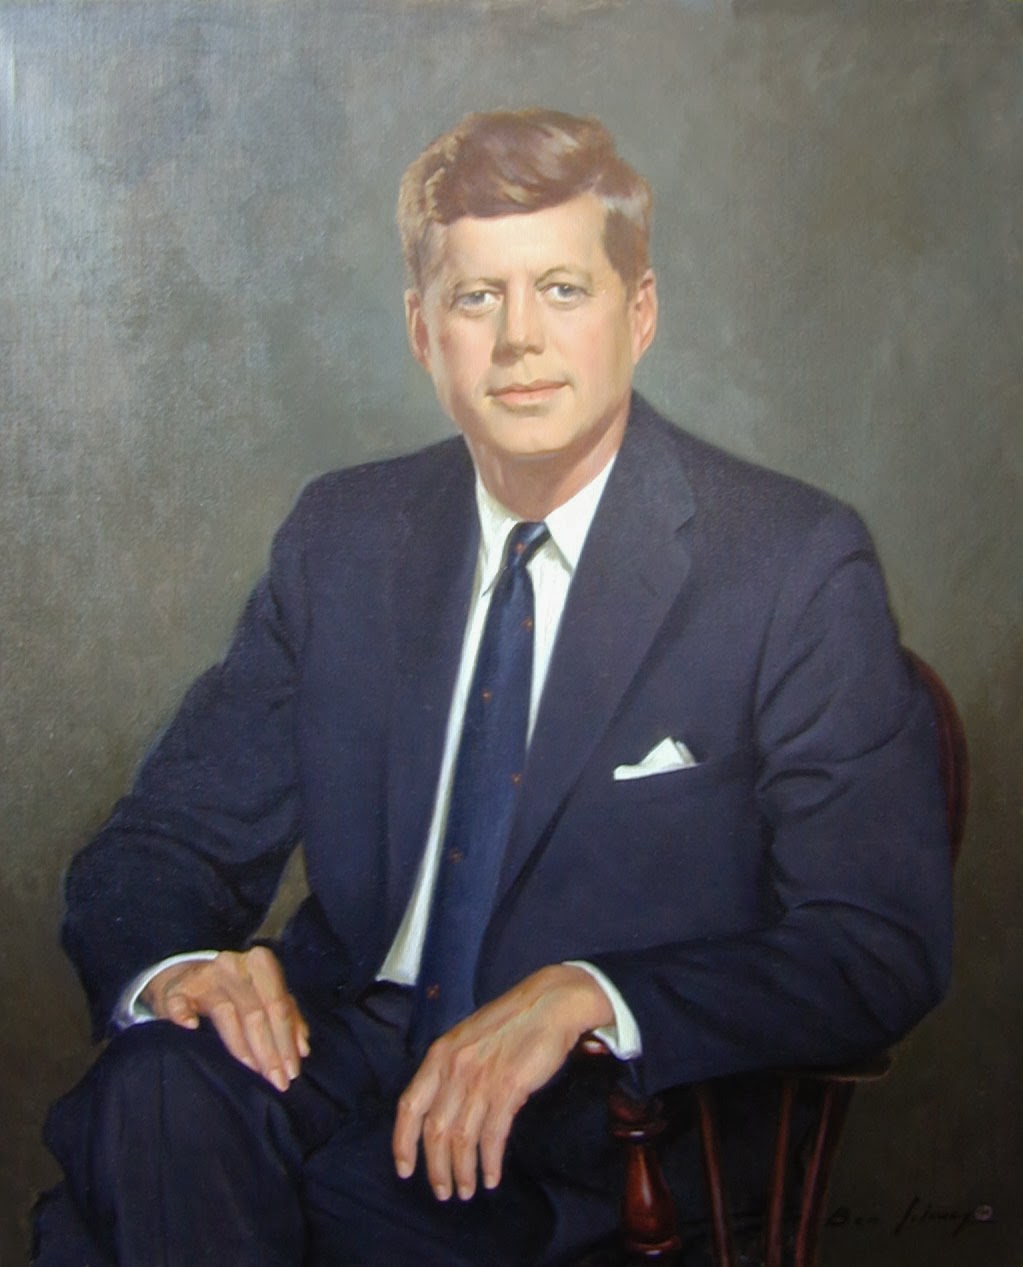 a discussion on the presidency of john f kennedy John fitzgerald kennedy (may 29, 1917 – november 22, 1963), also referred to as john f kennedy, jfk, john kennedy or jack kennedy, was the.